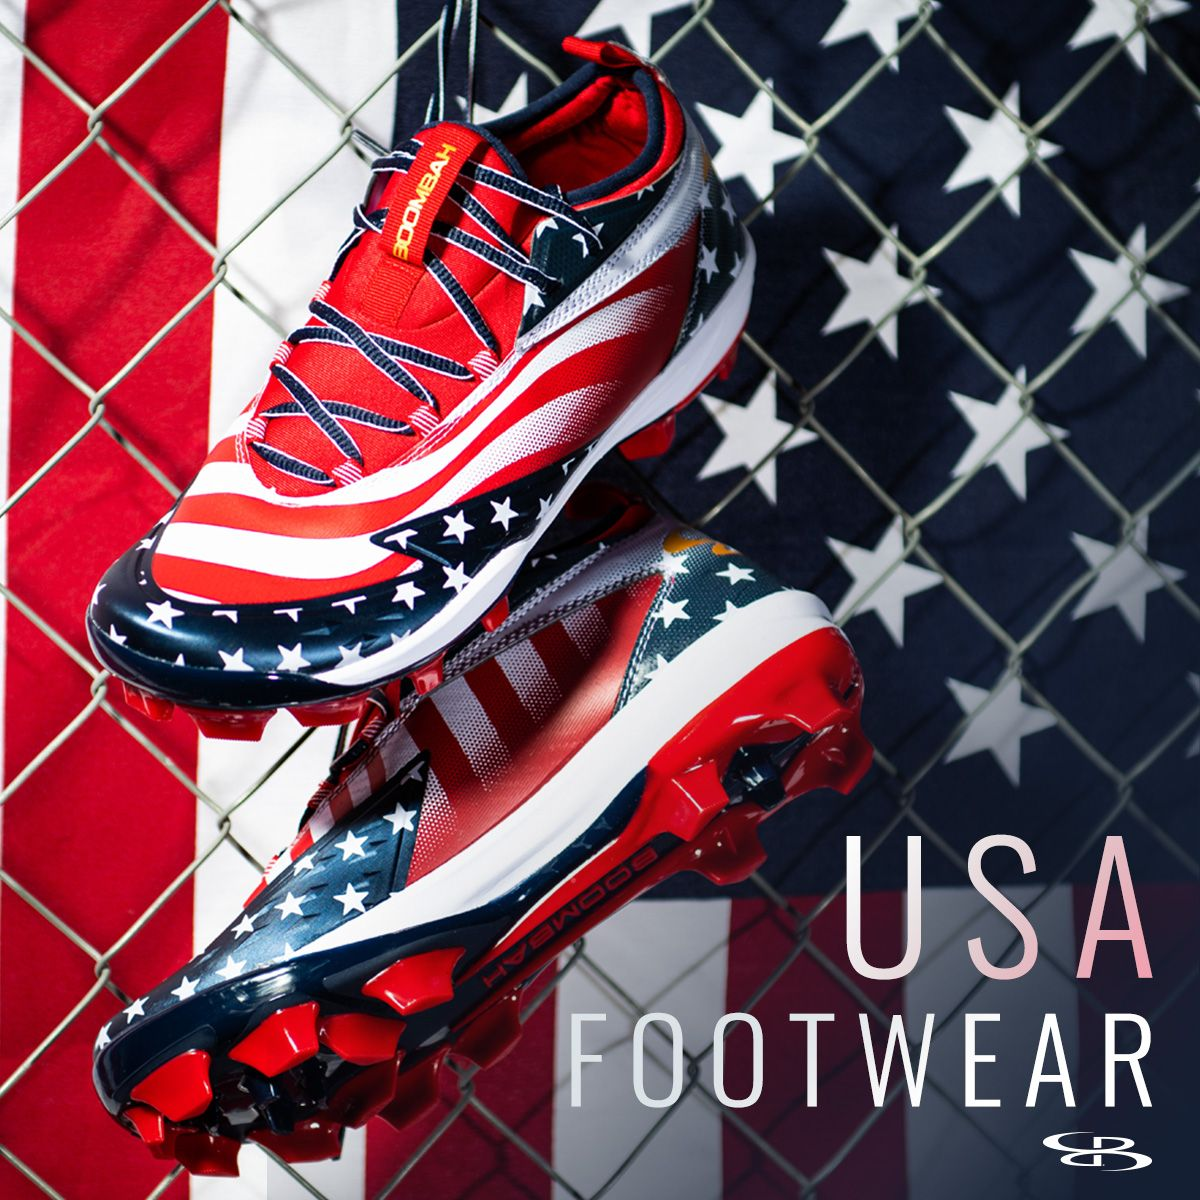 Usa Footwear Starting At 49 99 Boombah Sports Footwear Shoes Cleats Turfs Trail Usa Flag America Freedom Memor Footwear Shoes Hoka Running Shoes